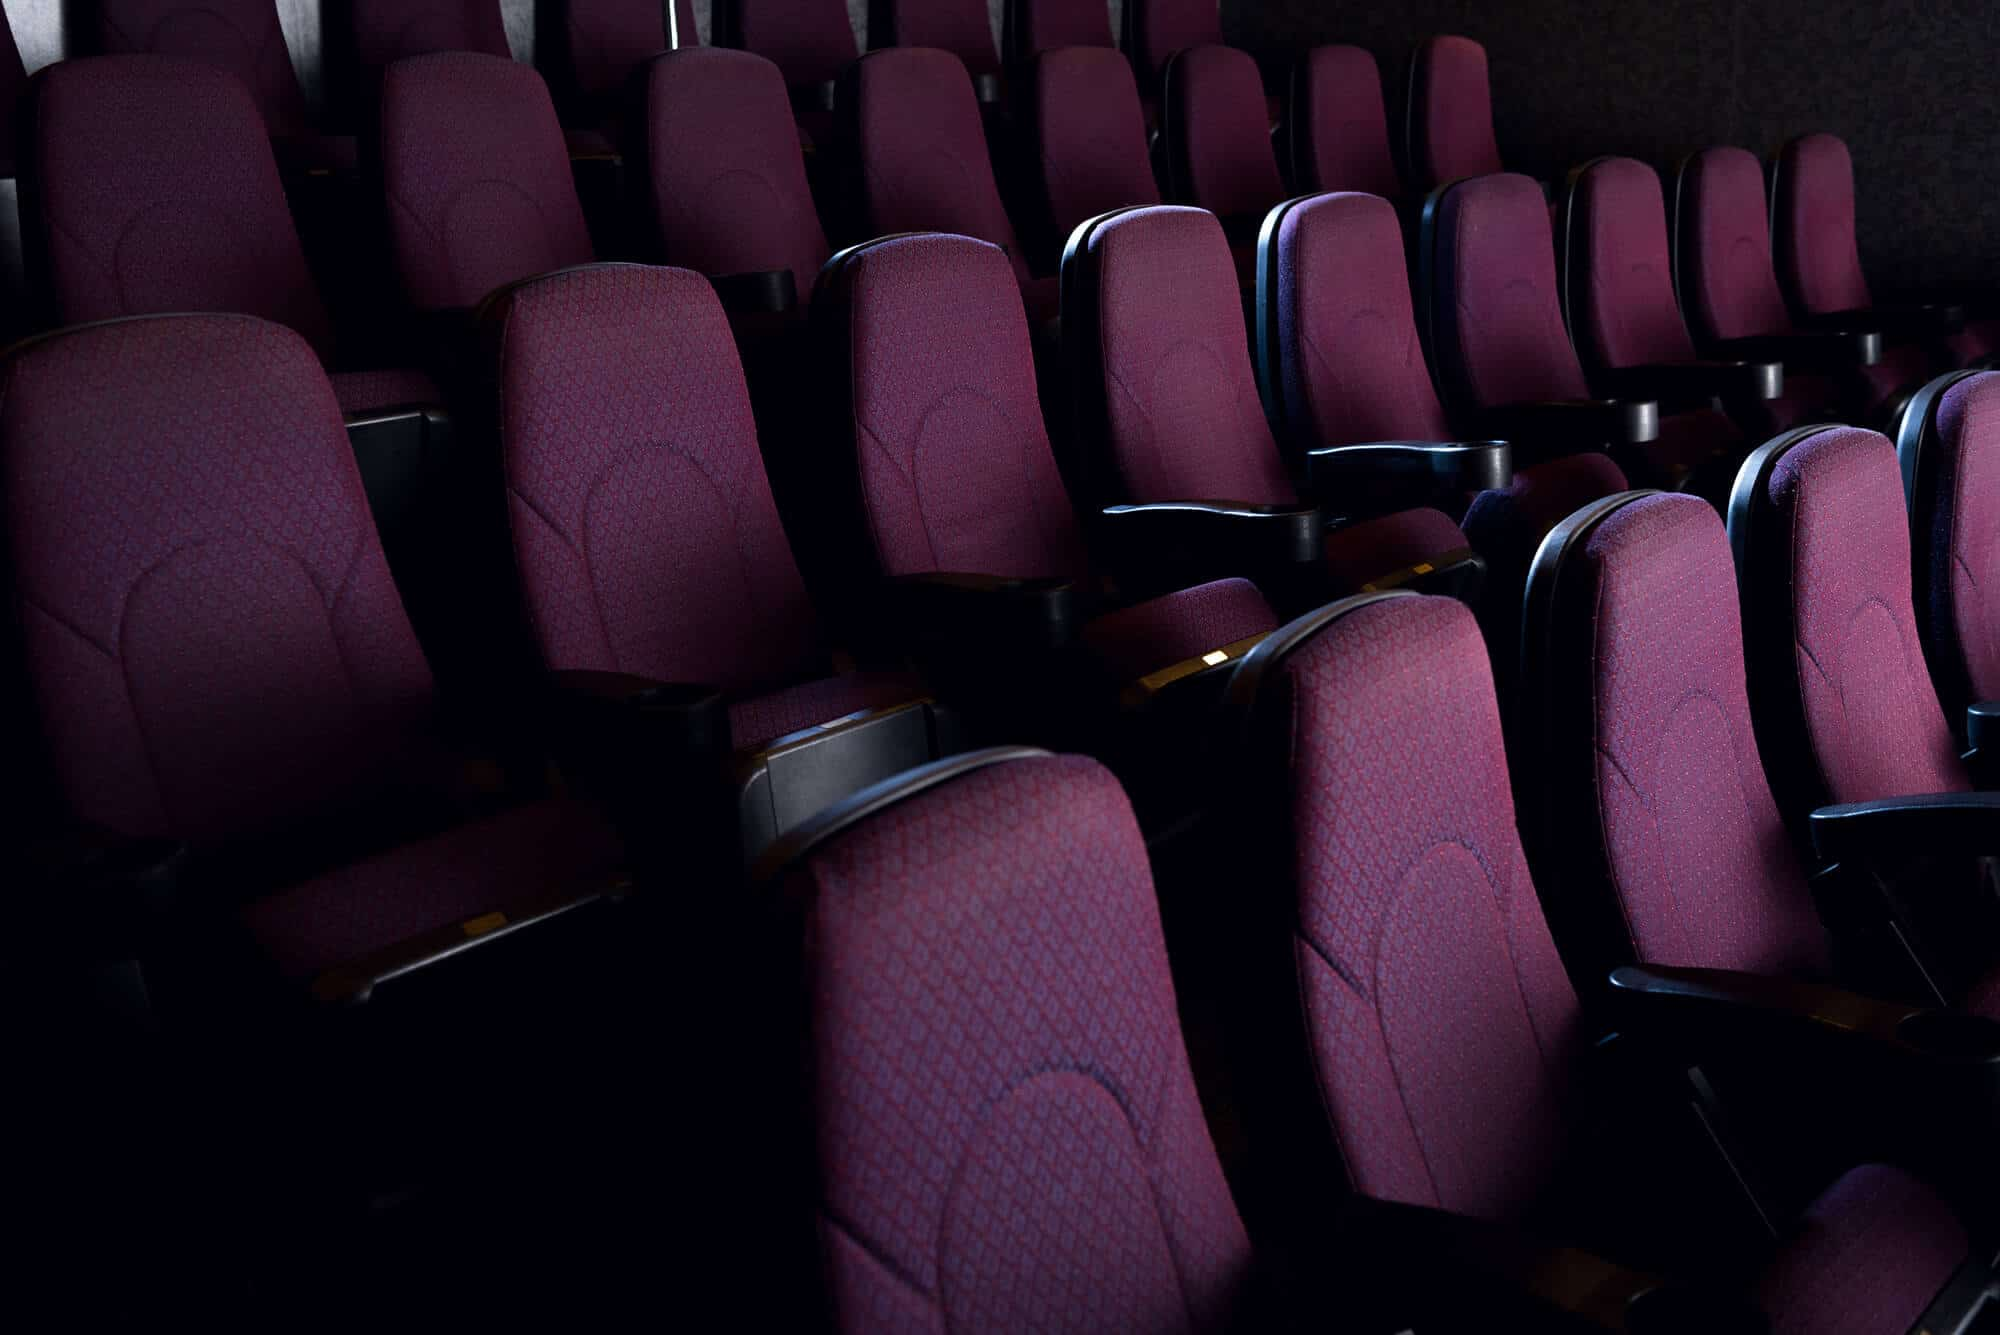 rows of empty movie theater seats